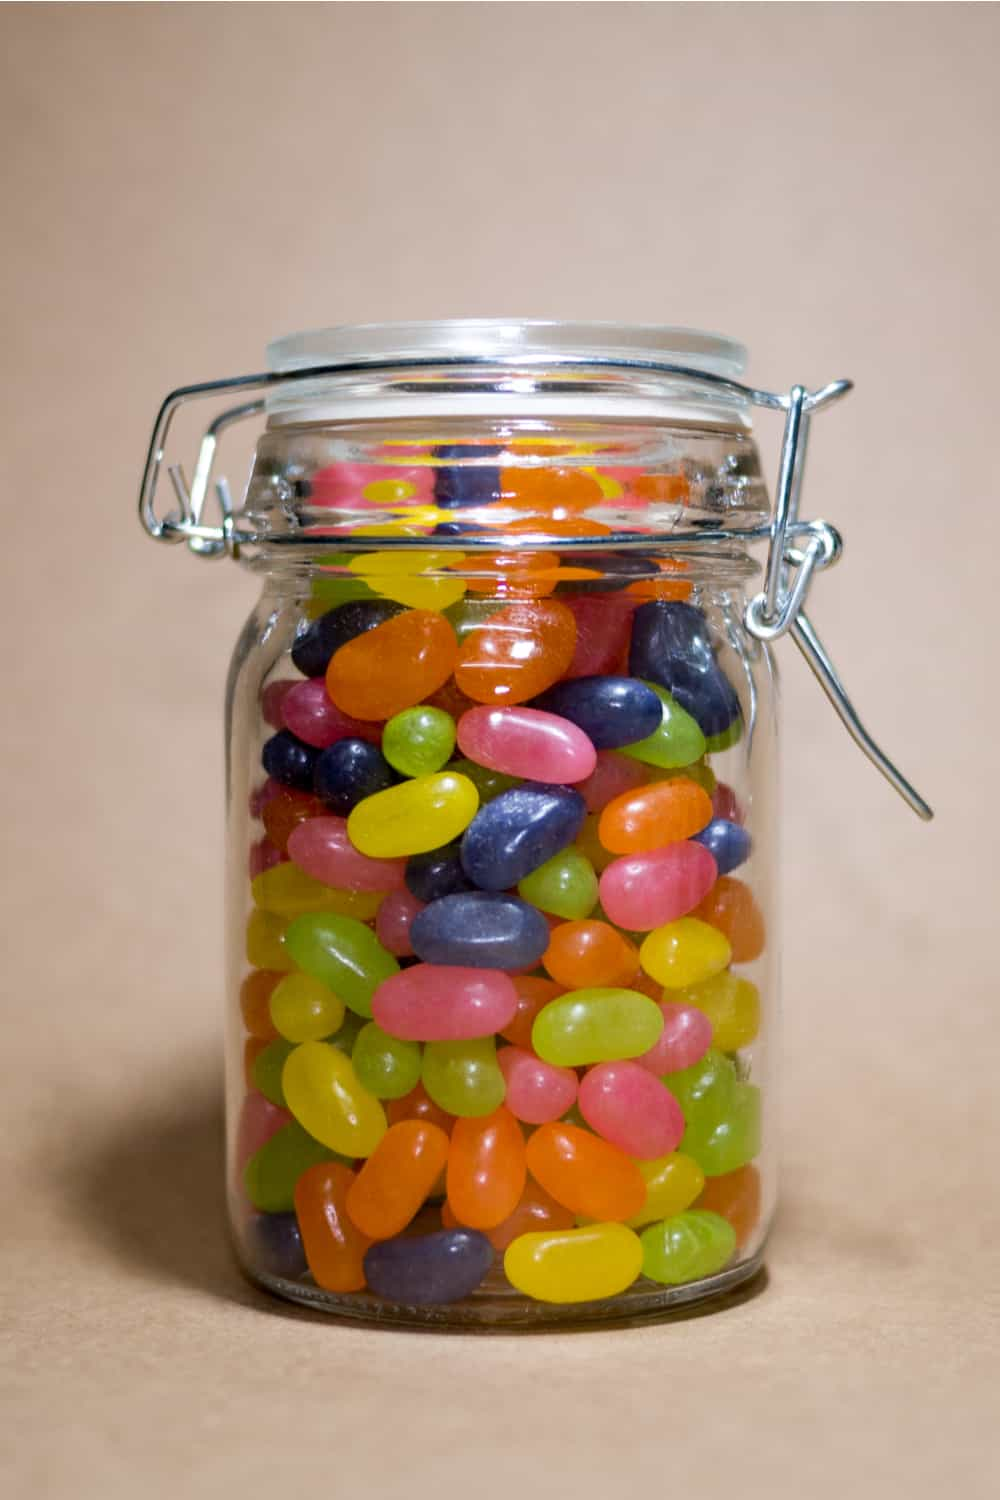 Top Tips to Store Jelly Beans